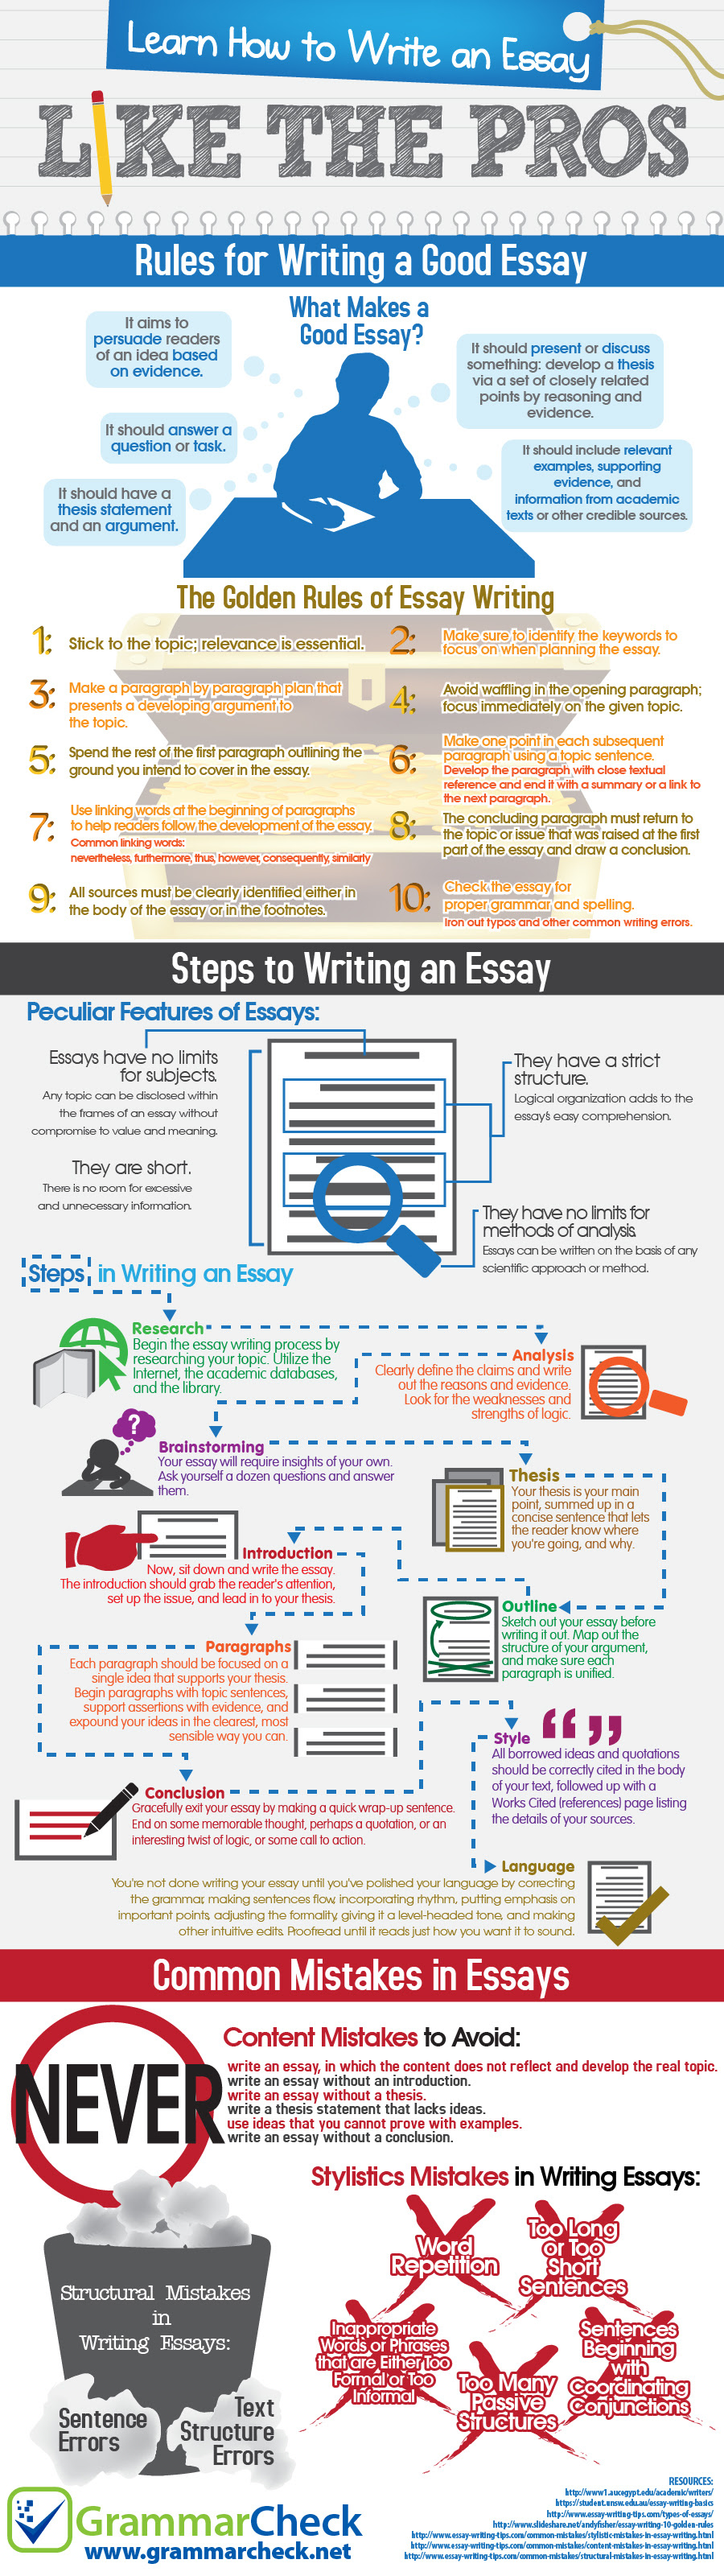 Write My Paper • Best Professional College Essay Writing Service